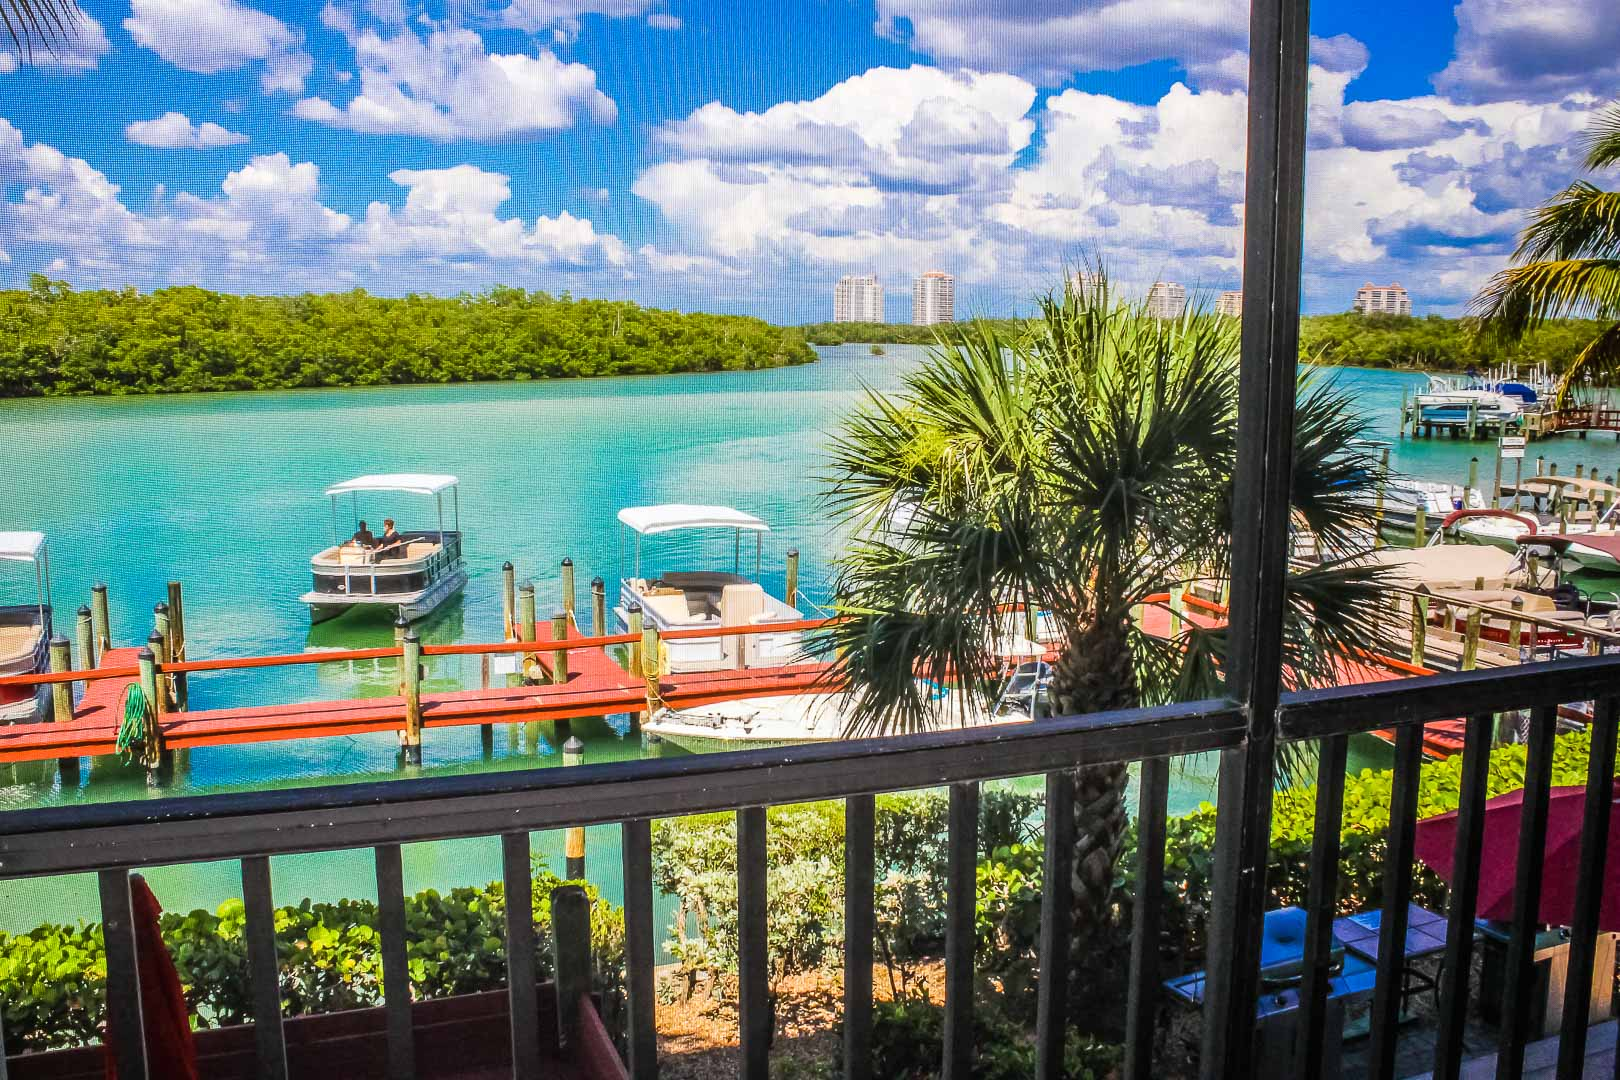 A vibrant beach view from the balcony at VRI's Bonita Resort and Club in Florida.